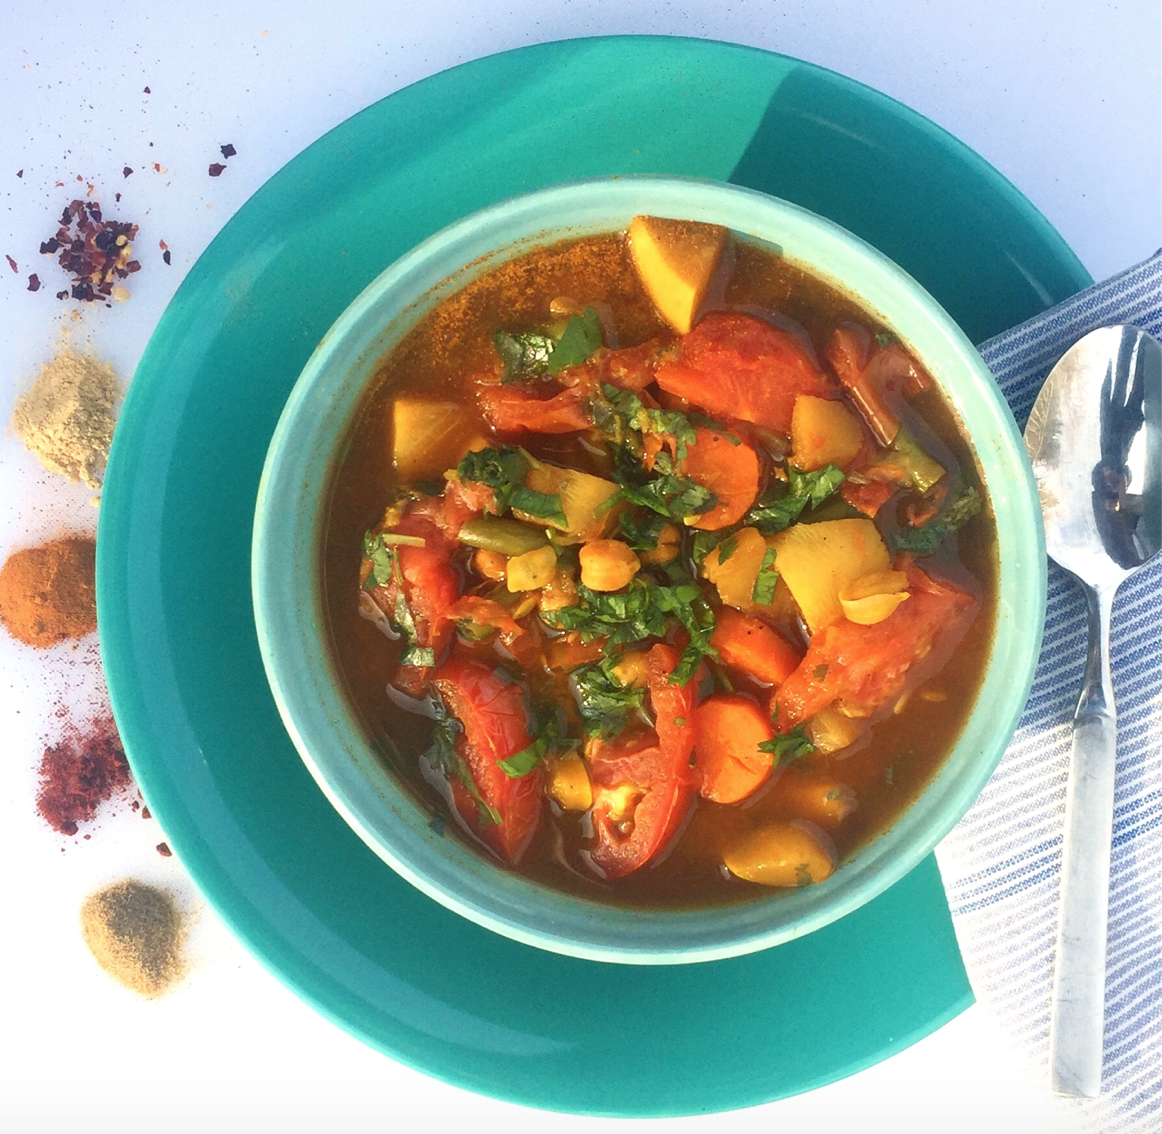 HEARTY, HEALTHY WINTER SOUPS